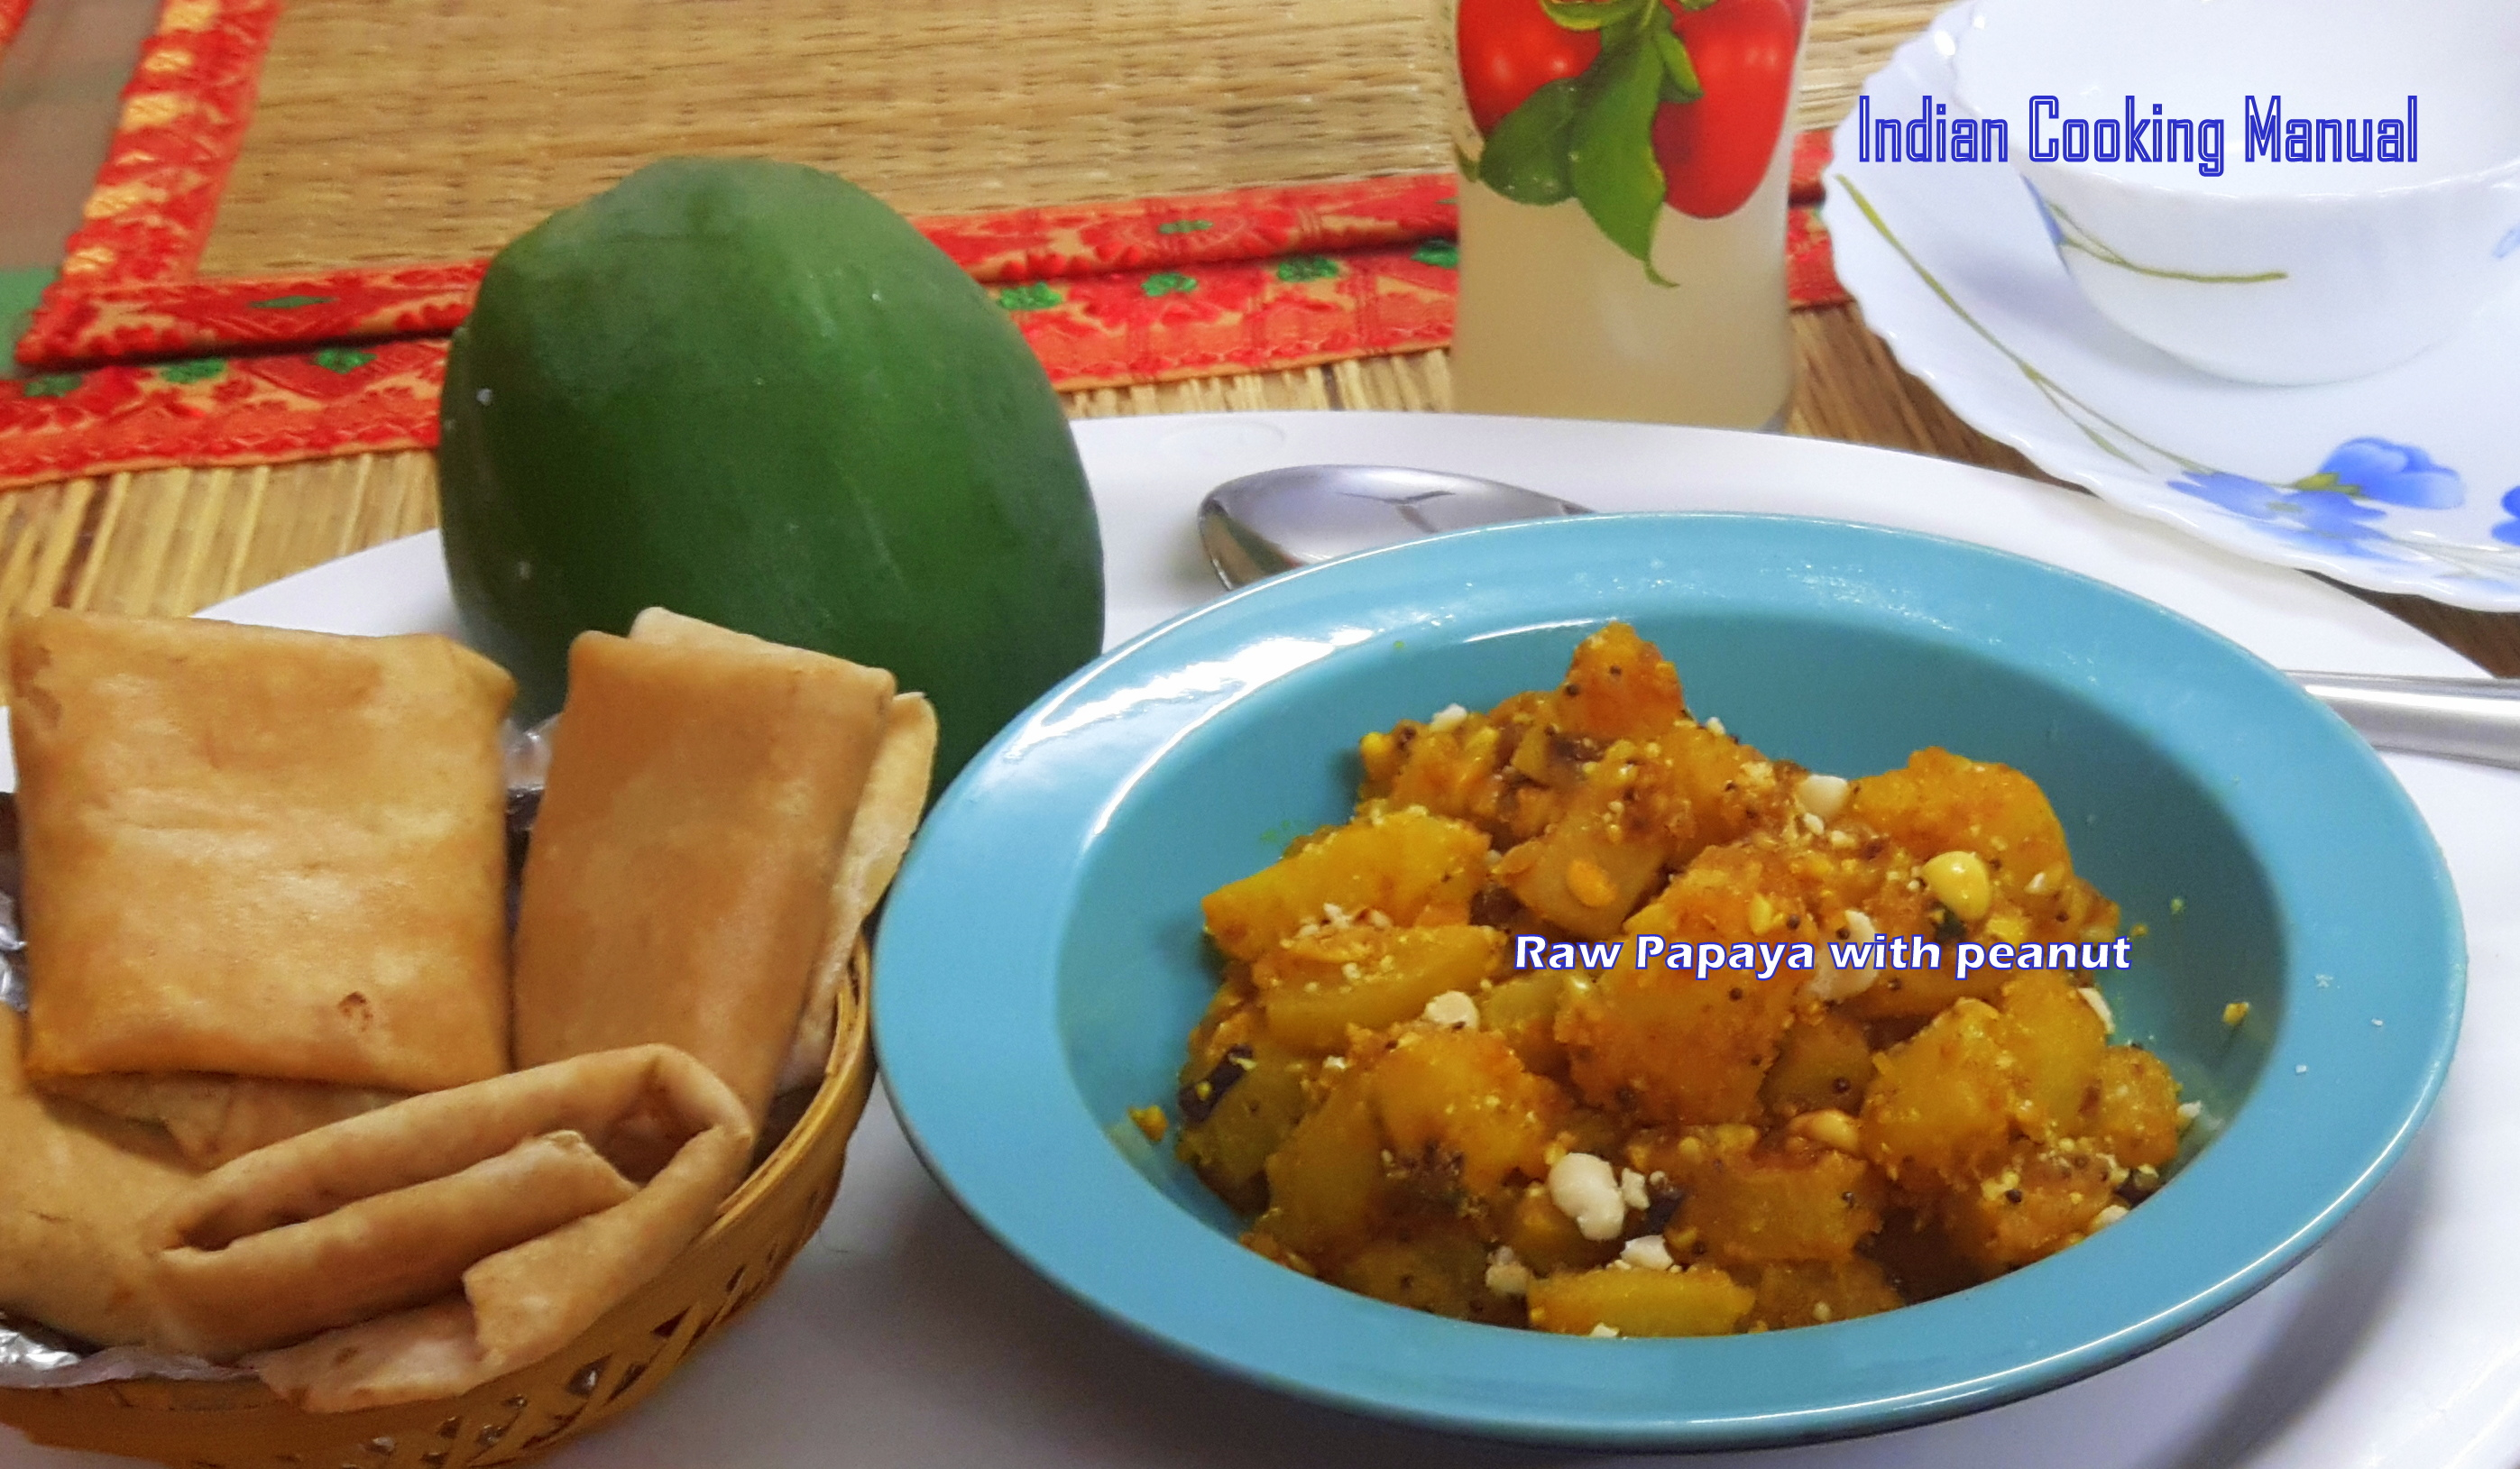 Raw papaya with peanut